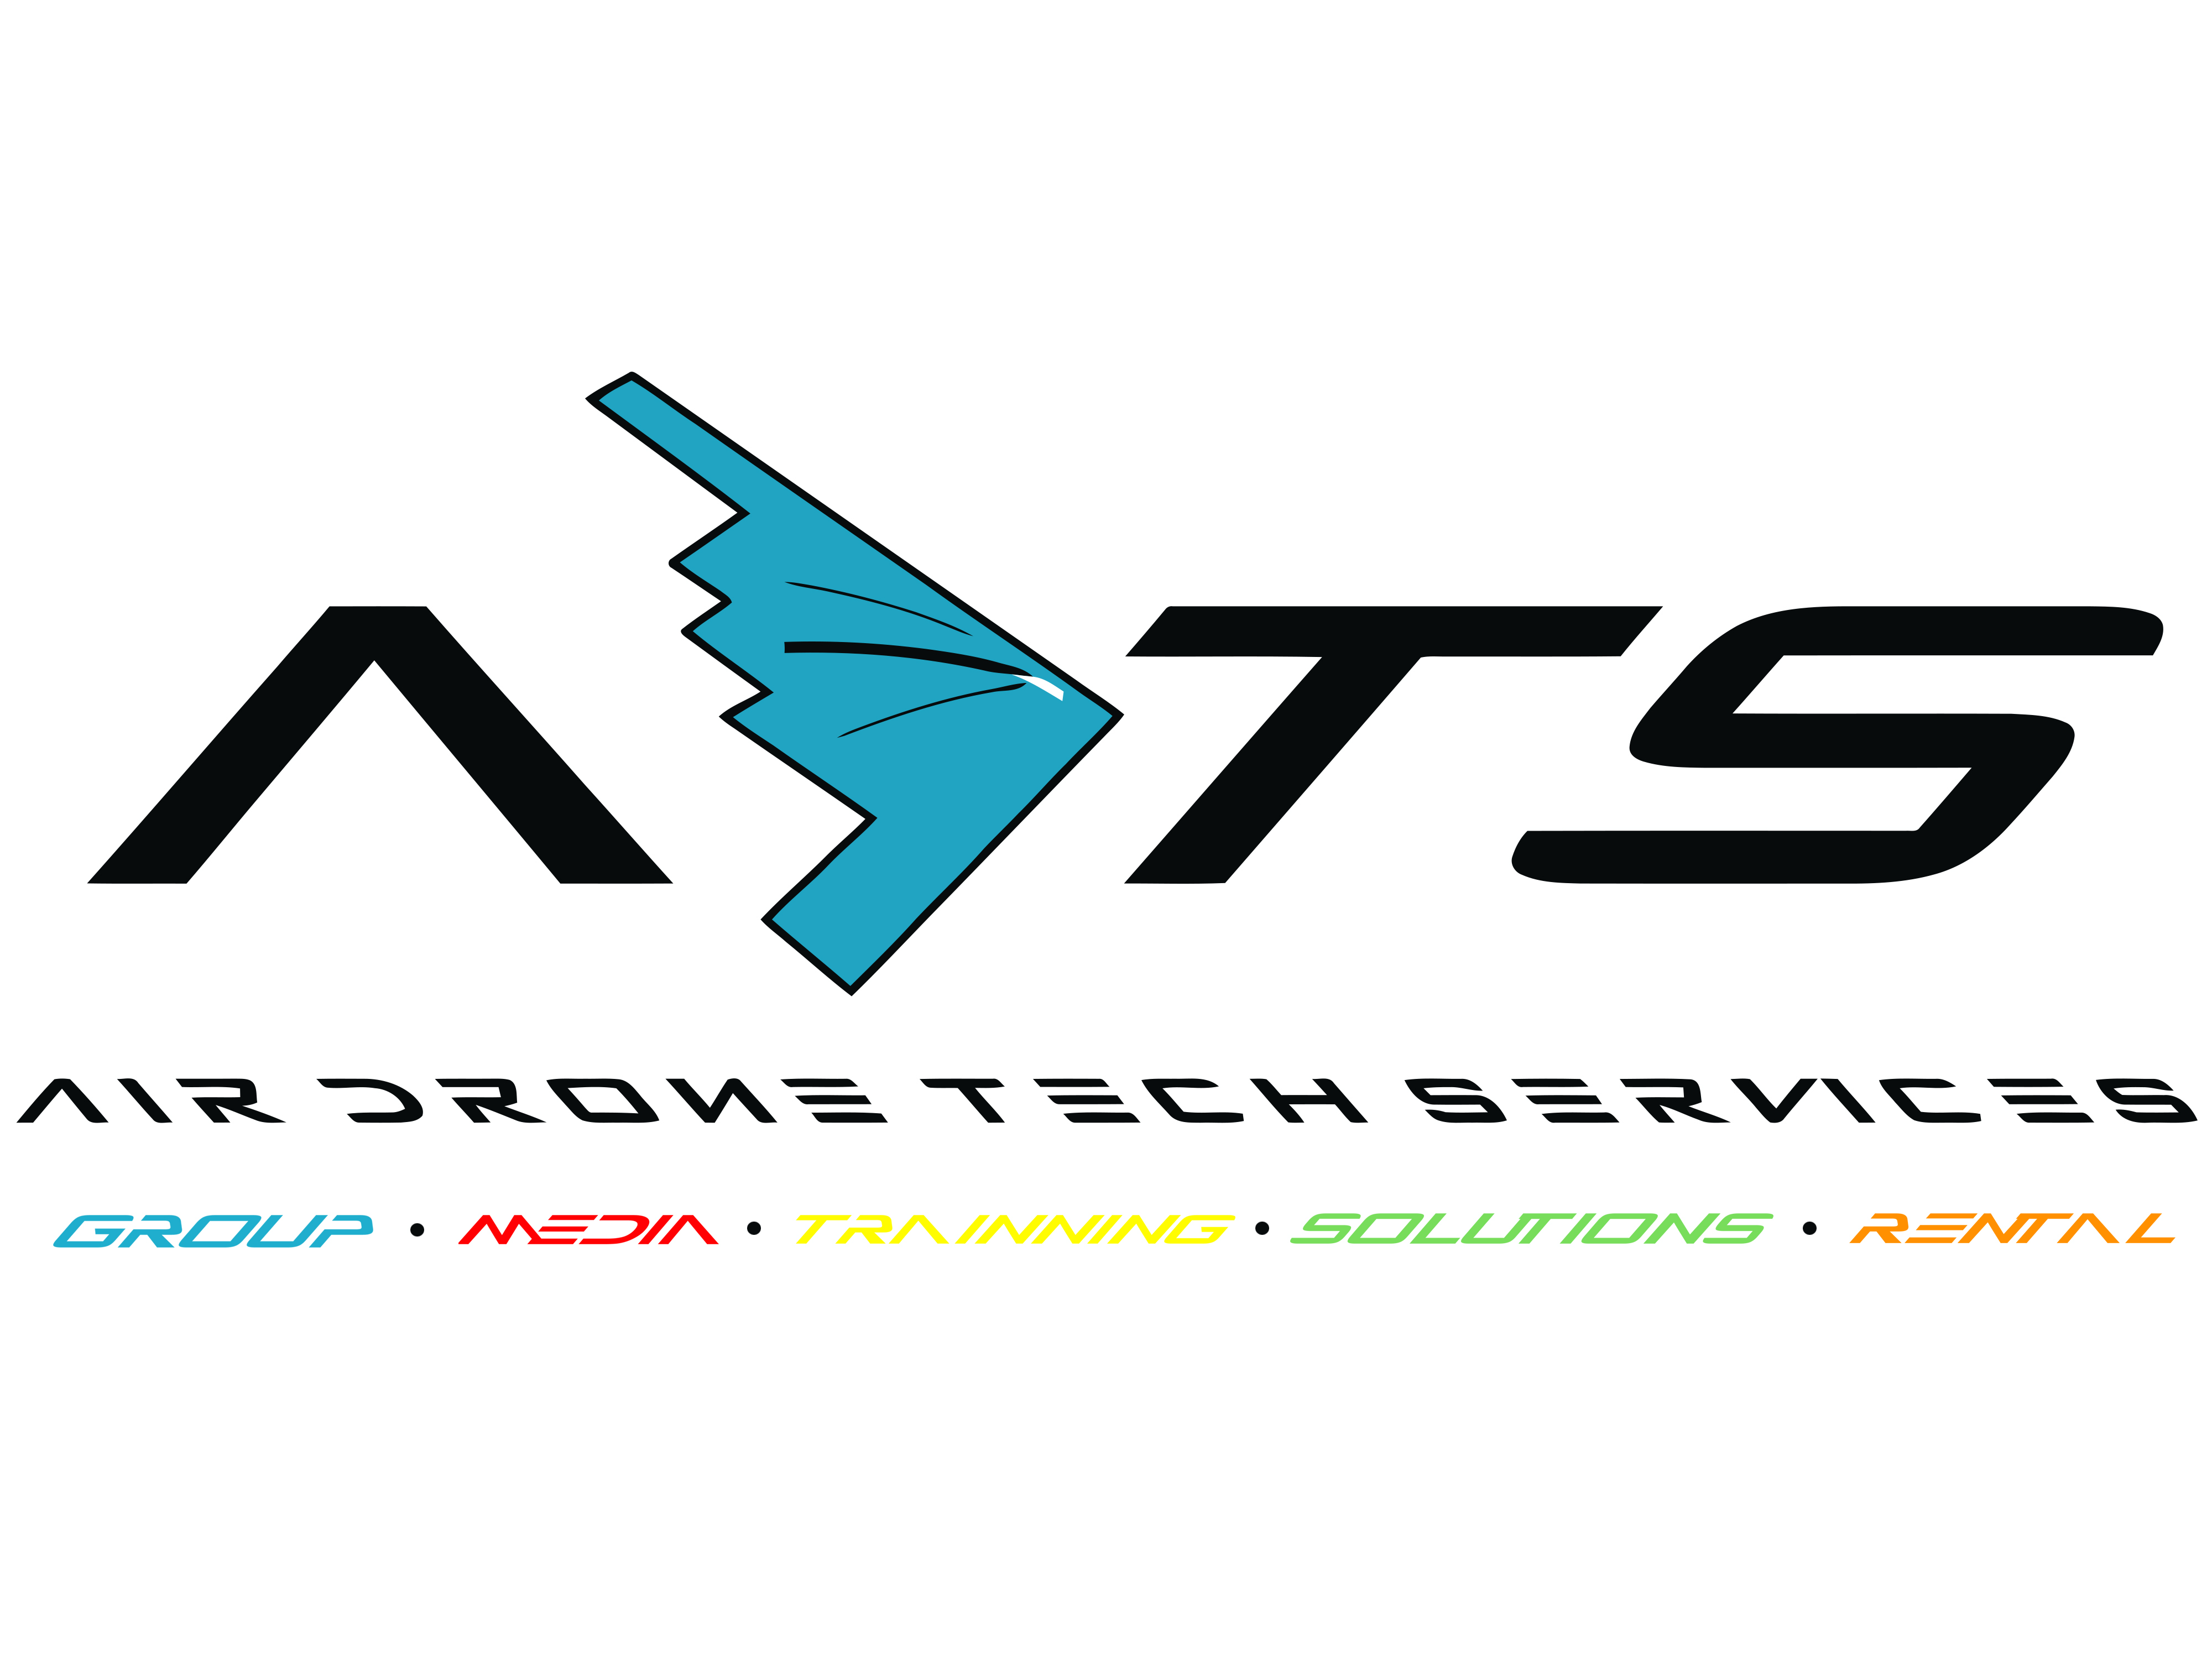 ADTS Group